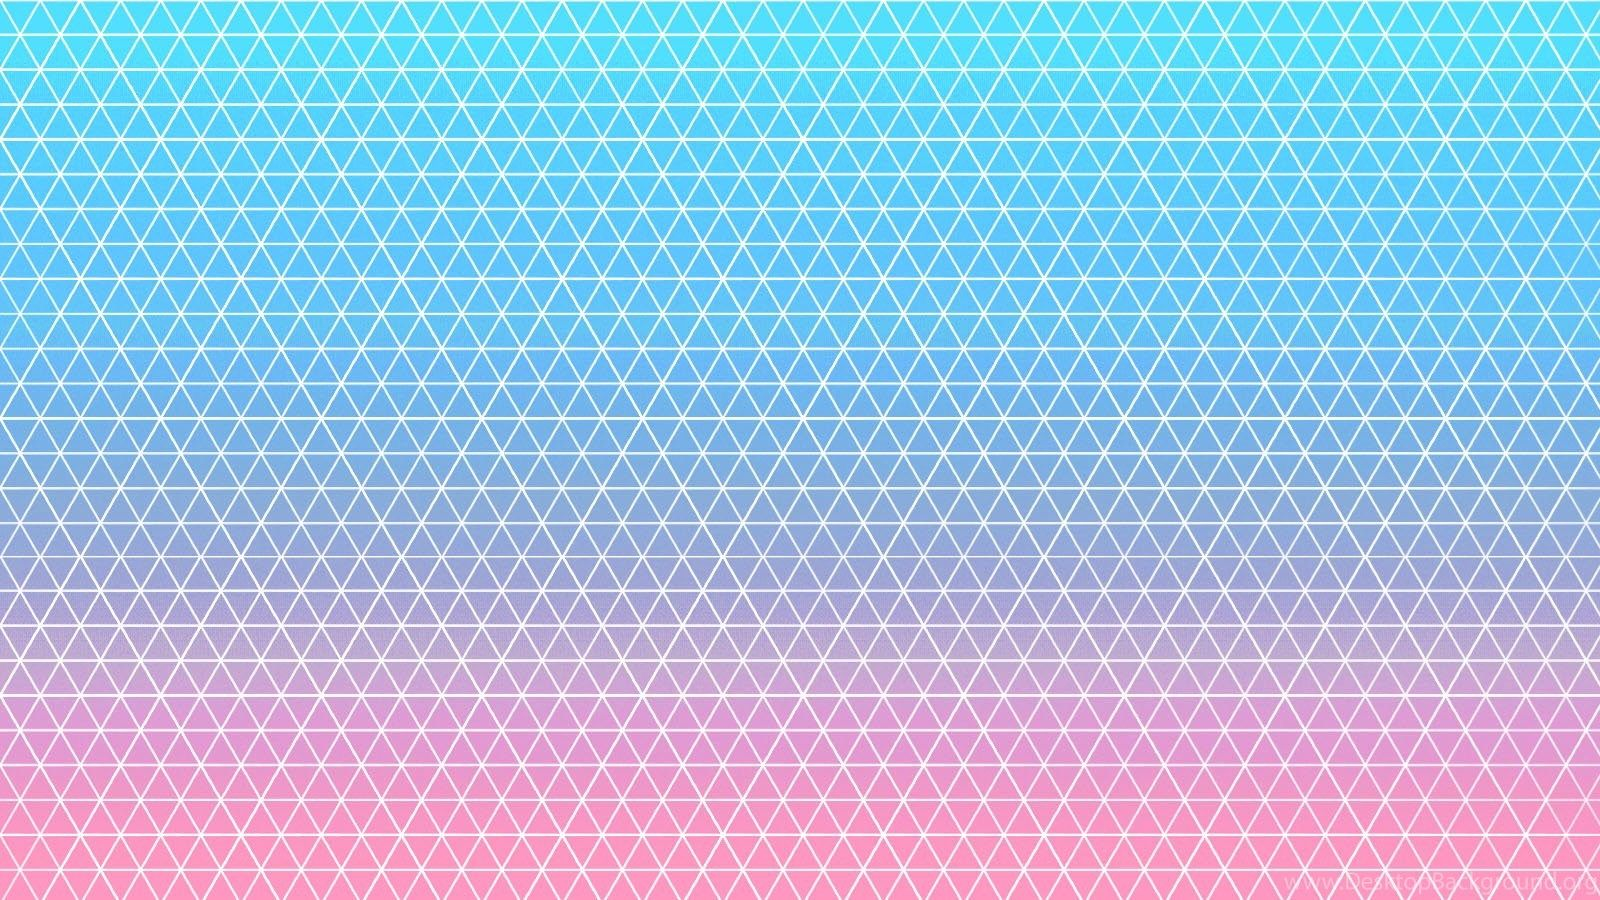 Aesthetic Wallpapers Wallpapers Blue Aesthetic Tumblr Aesthetic Wallpapers Tumblr Computer Backgrounds